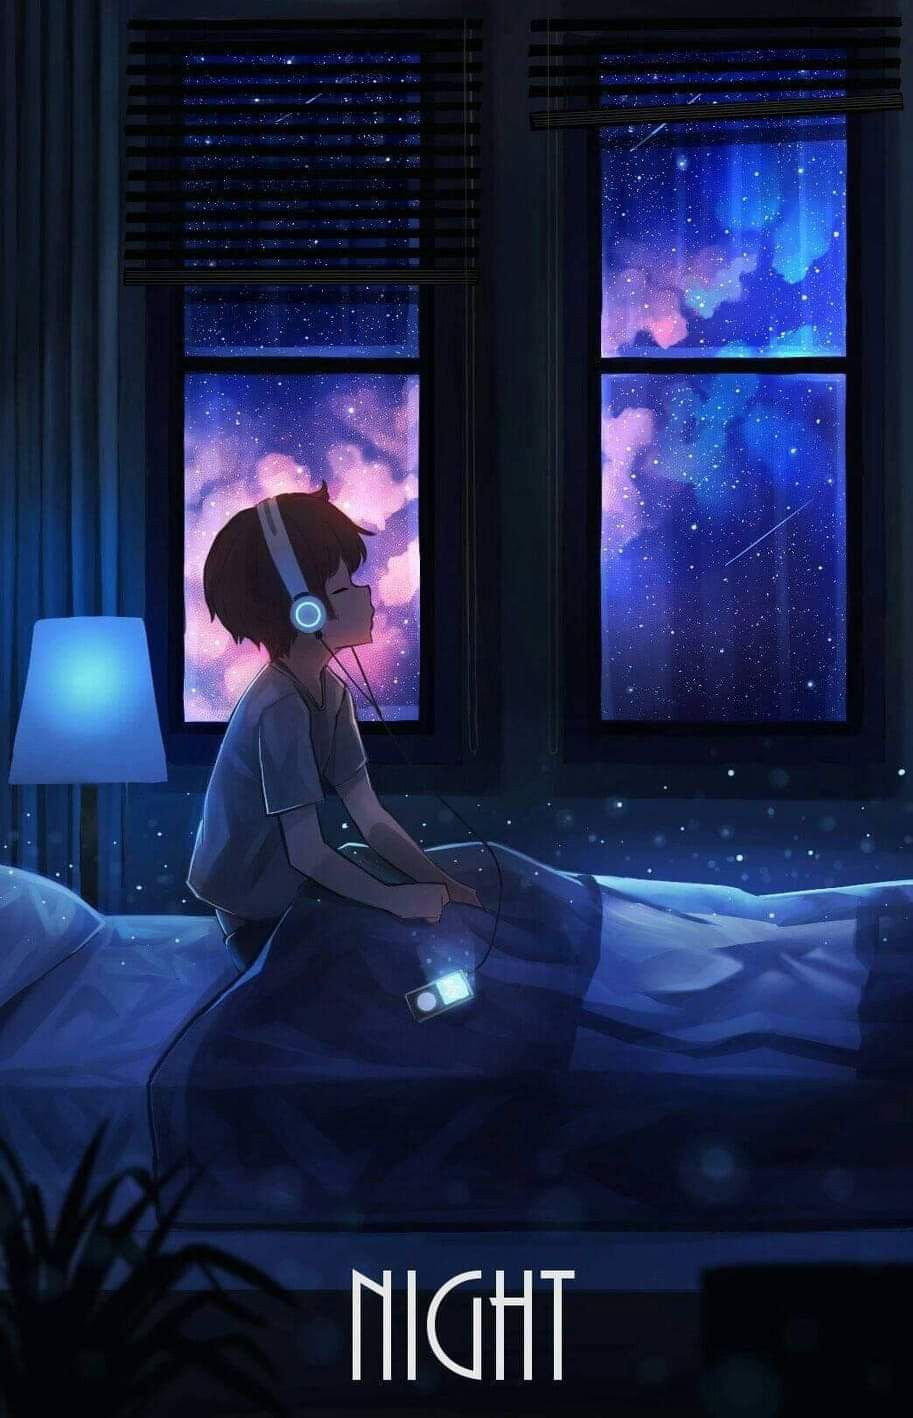 Pin By Ilham Hermawan On Anime Lovers Cool Anime Wallpapers Sky Anime Anime Backgrounds Wallpapers Great wallpapers for anime lovers